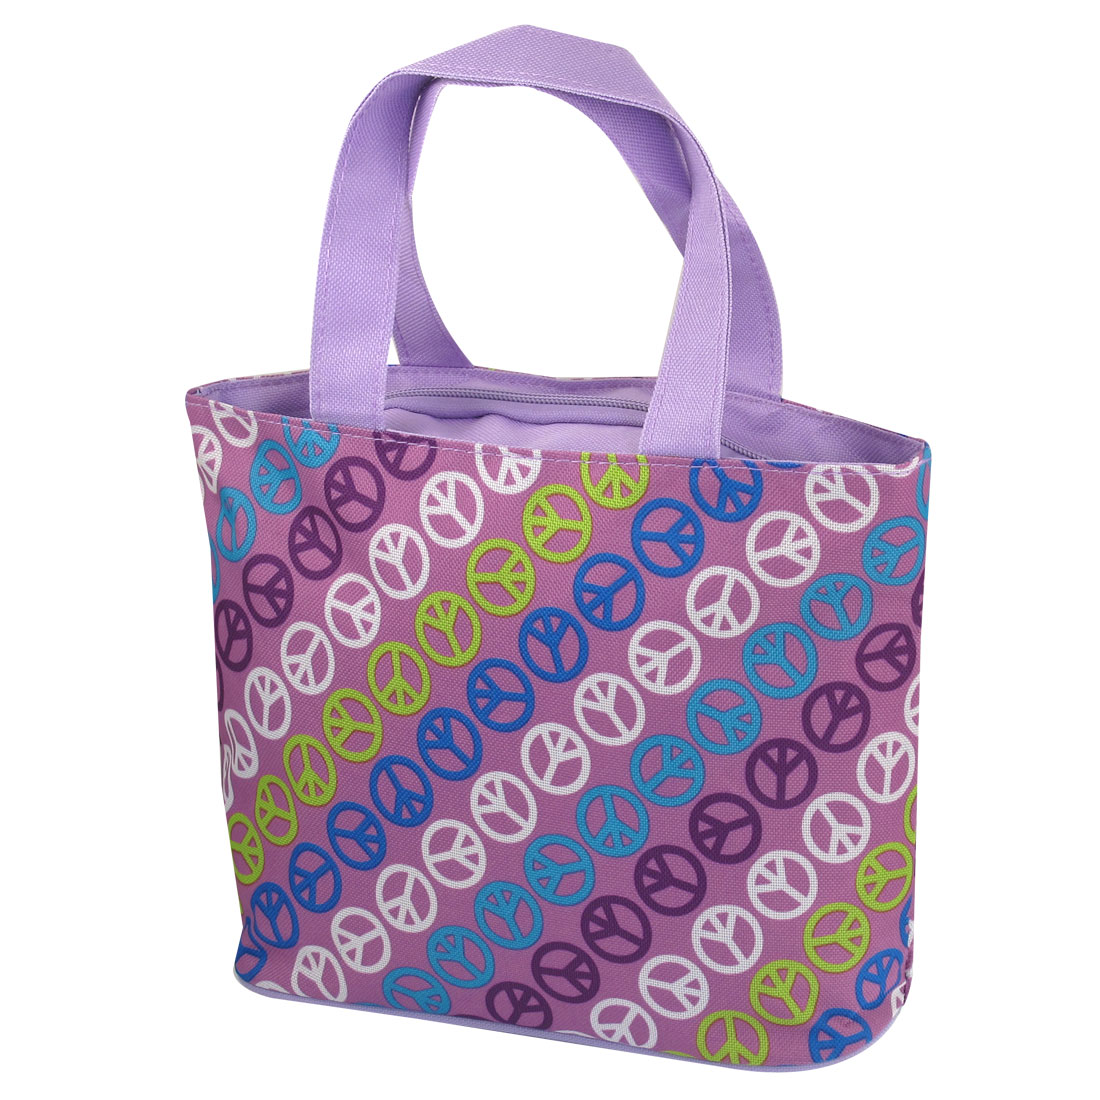 Waterproof Non Woven Multicolor Water Resistant Shopping Handbag